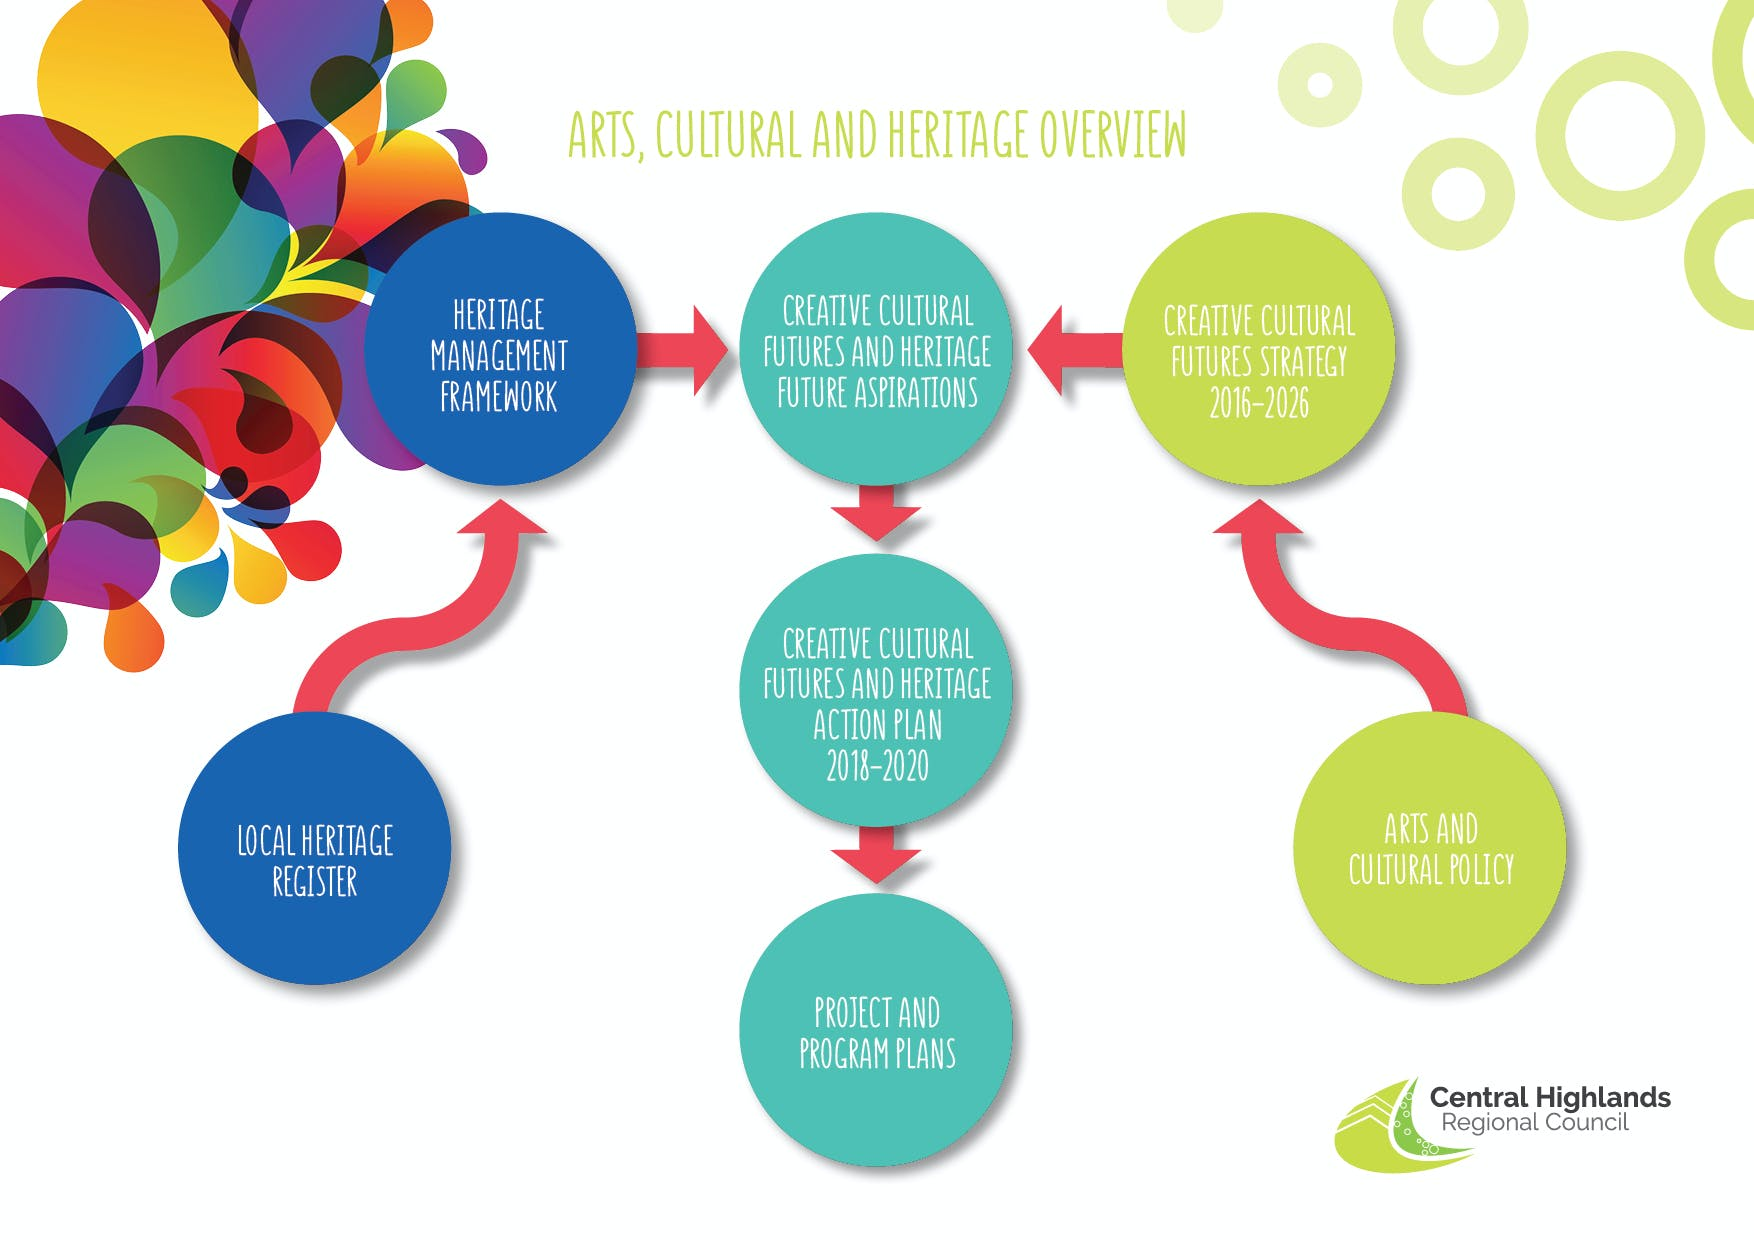 Arts, cultural and heritage strategic documents